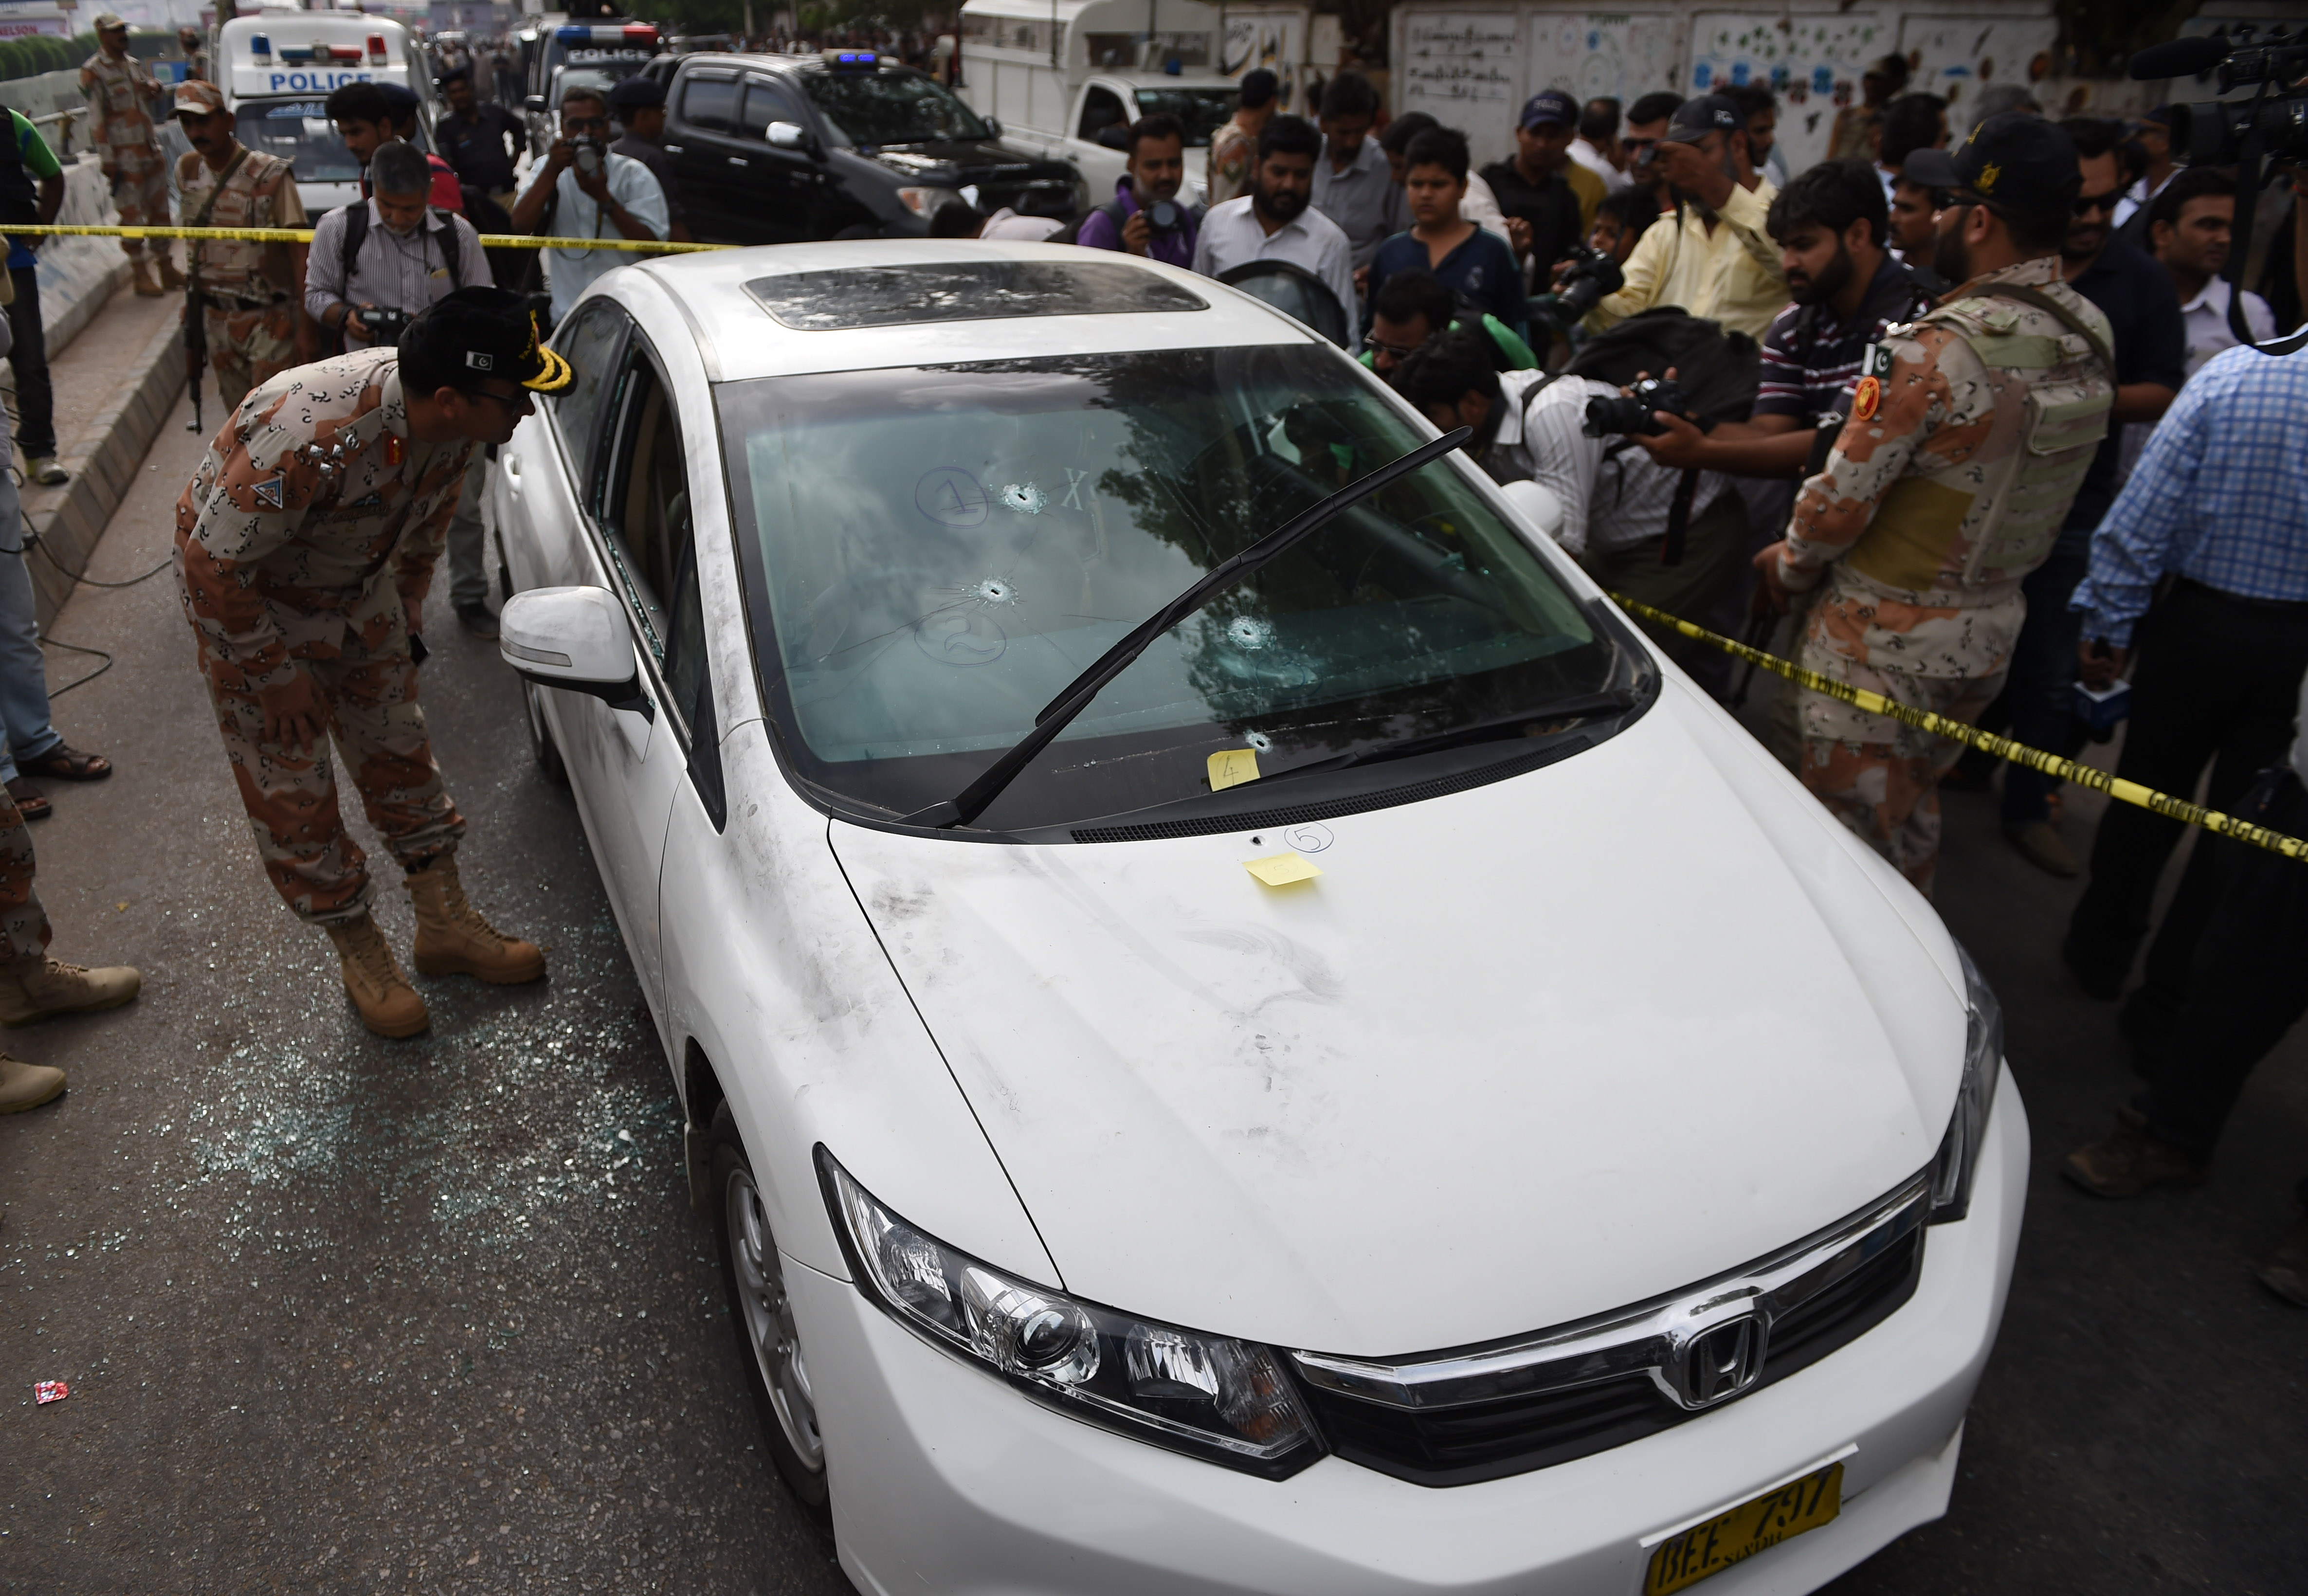 Pakistani security officials inspect the bullet-riddled car of Sufi musician Amjad Sabri who was killed in an attack by unknown gunmen, at a morgue in Karachi on June 22, 2016.